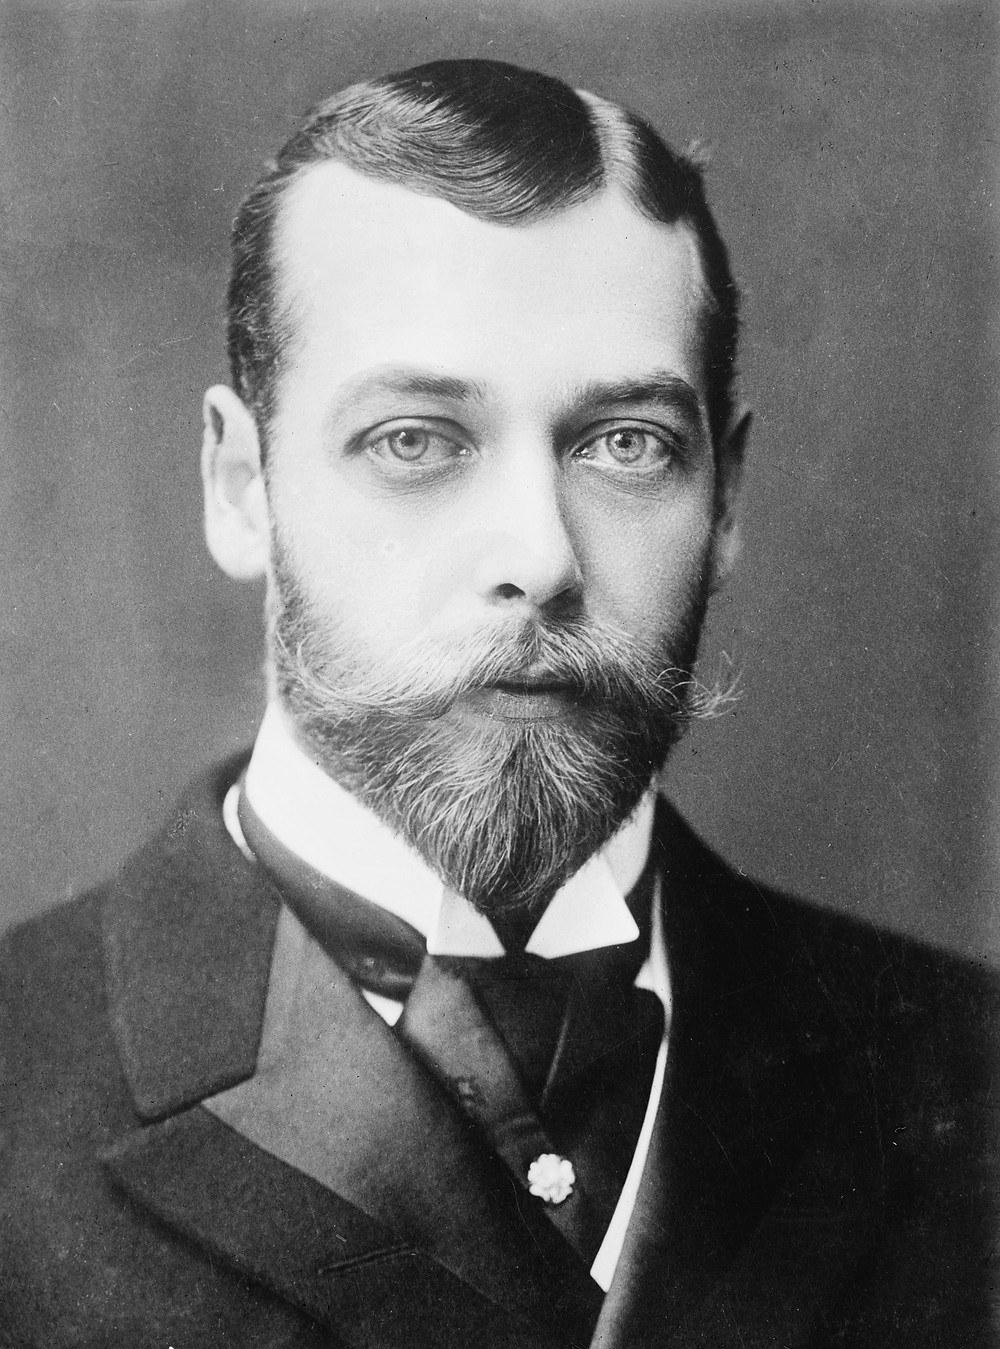 Portrait of King George V, when Duke ofYork, 1893. He was King of was King of the United Kingdom from 1910 until his death in 1936.